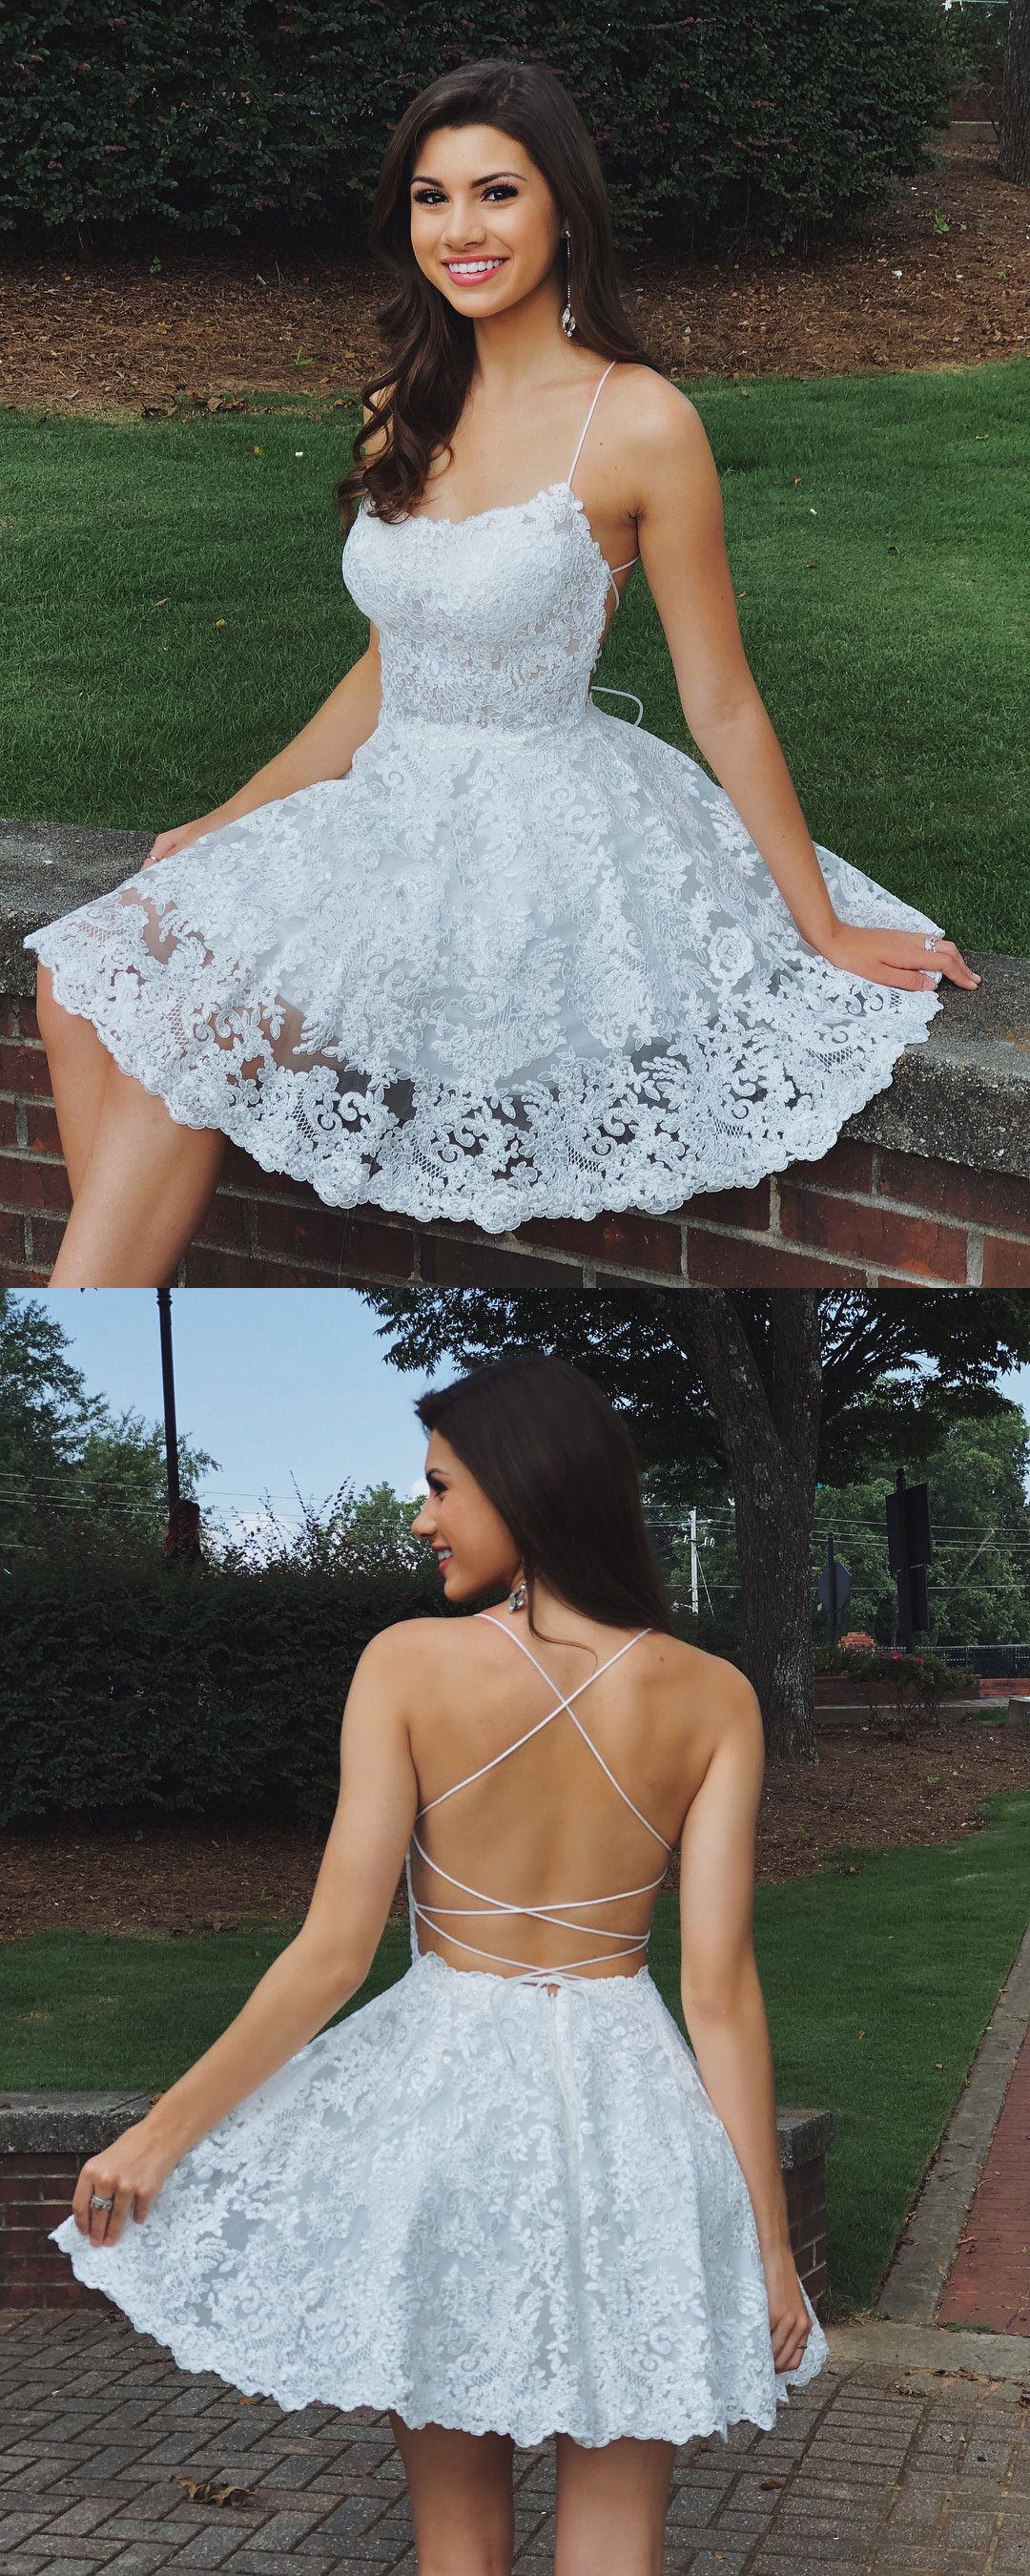 Cute white lace short homecoming dresses homecoming dresses